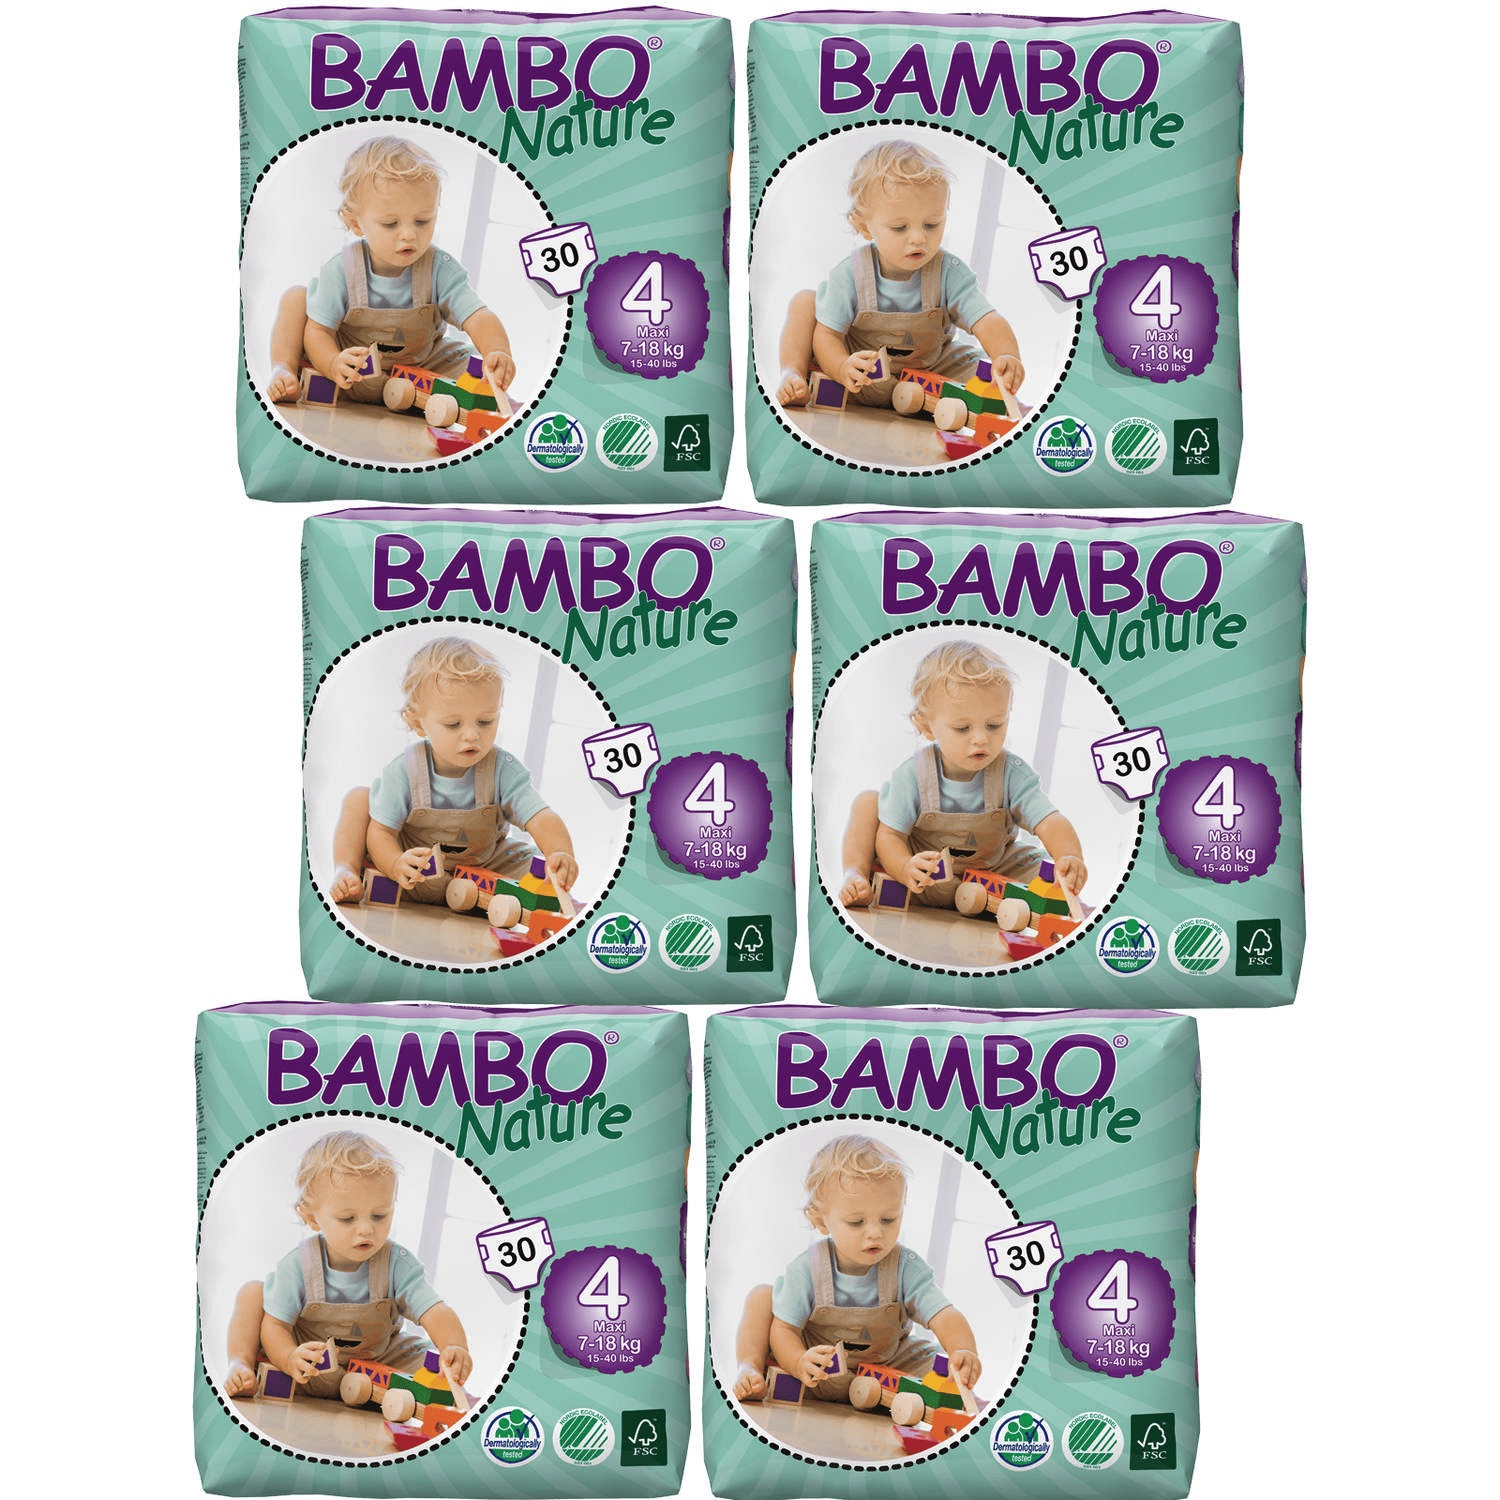 Bambo Nature Baby Diapers Classic, Size 4 (15-40 lbs), 360 Count (2 Cases of 180)